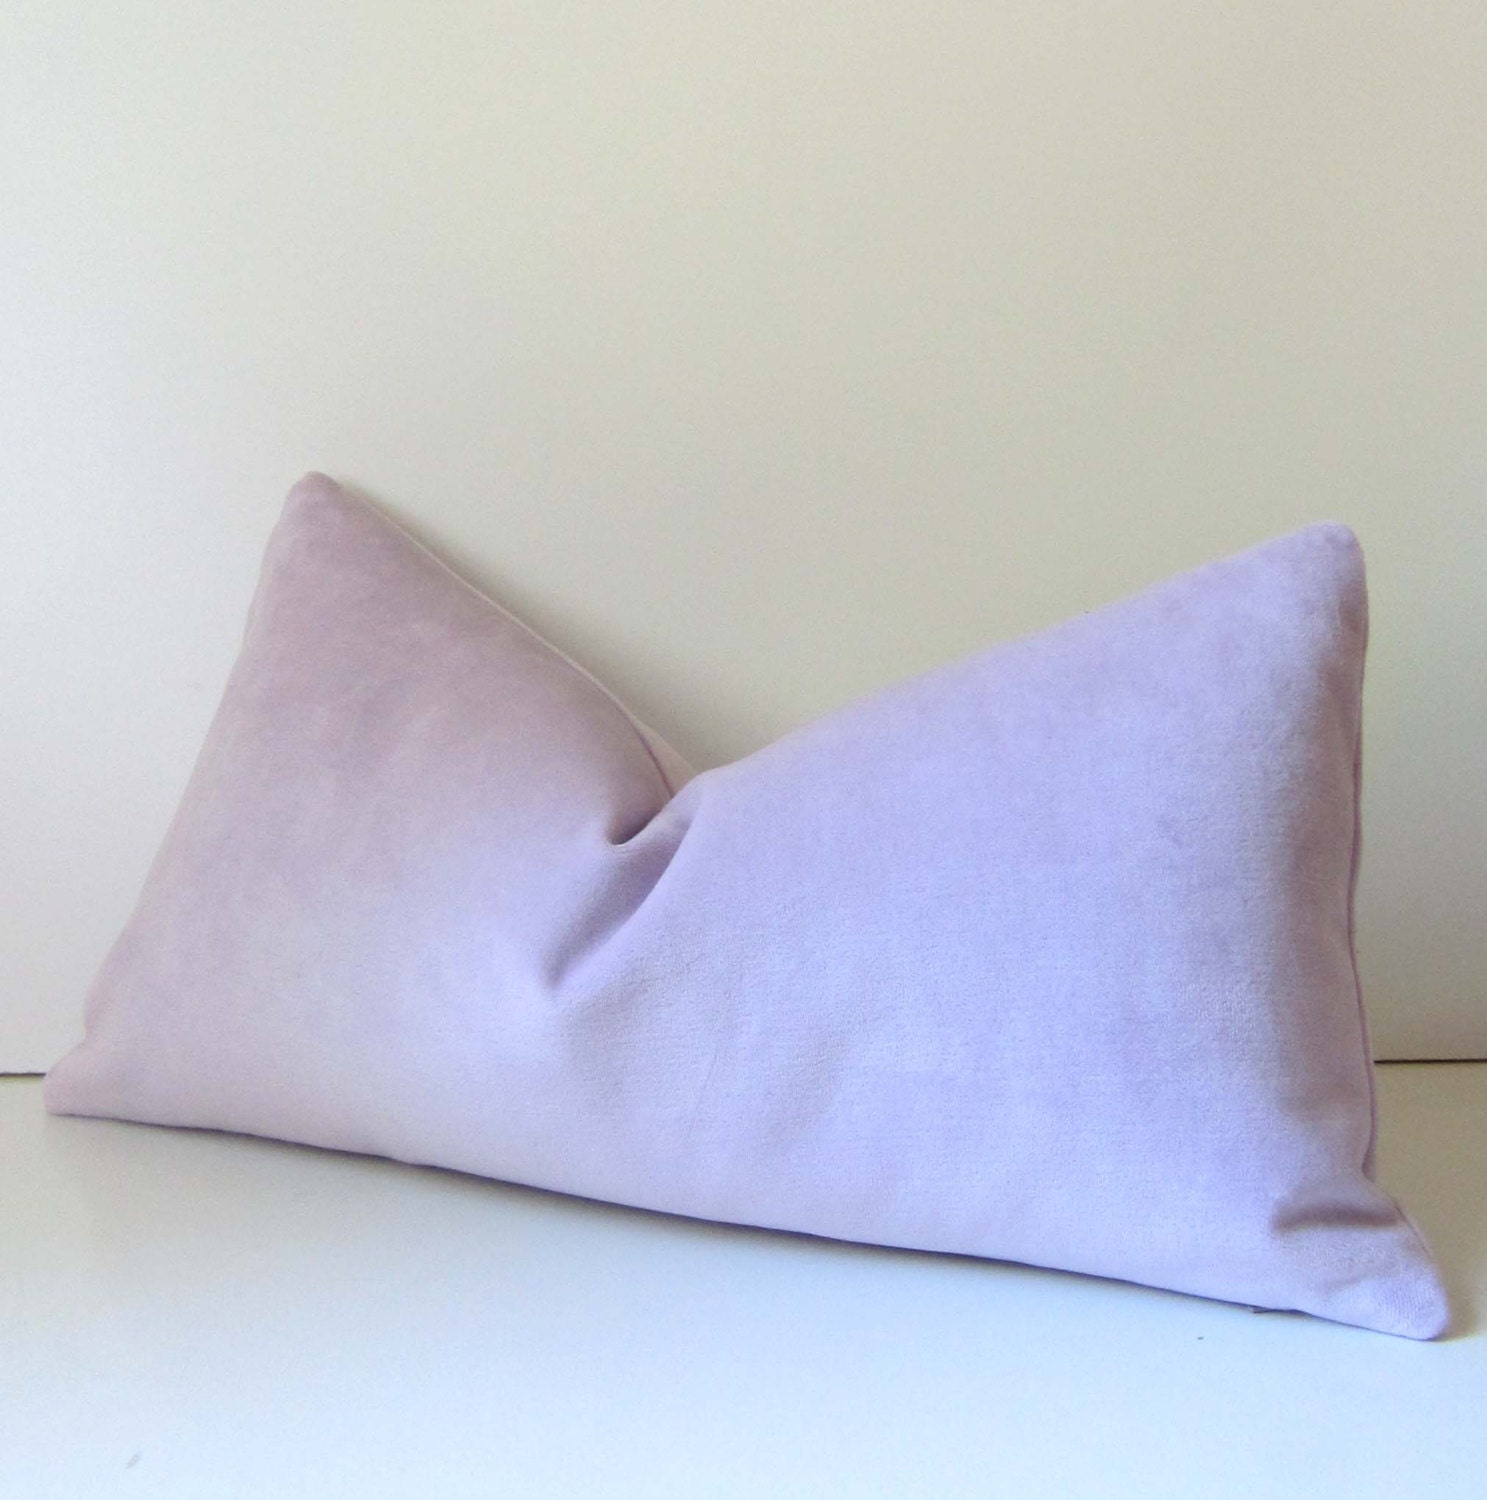 12 Inch Throw Pillow Covers : Decorative Pillow Cover 12 x 22 inch lilac by studiotullia